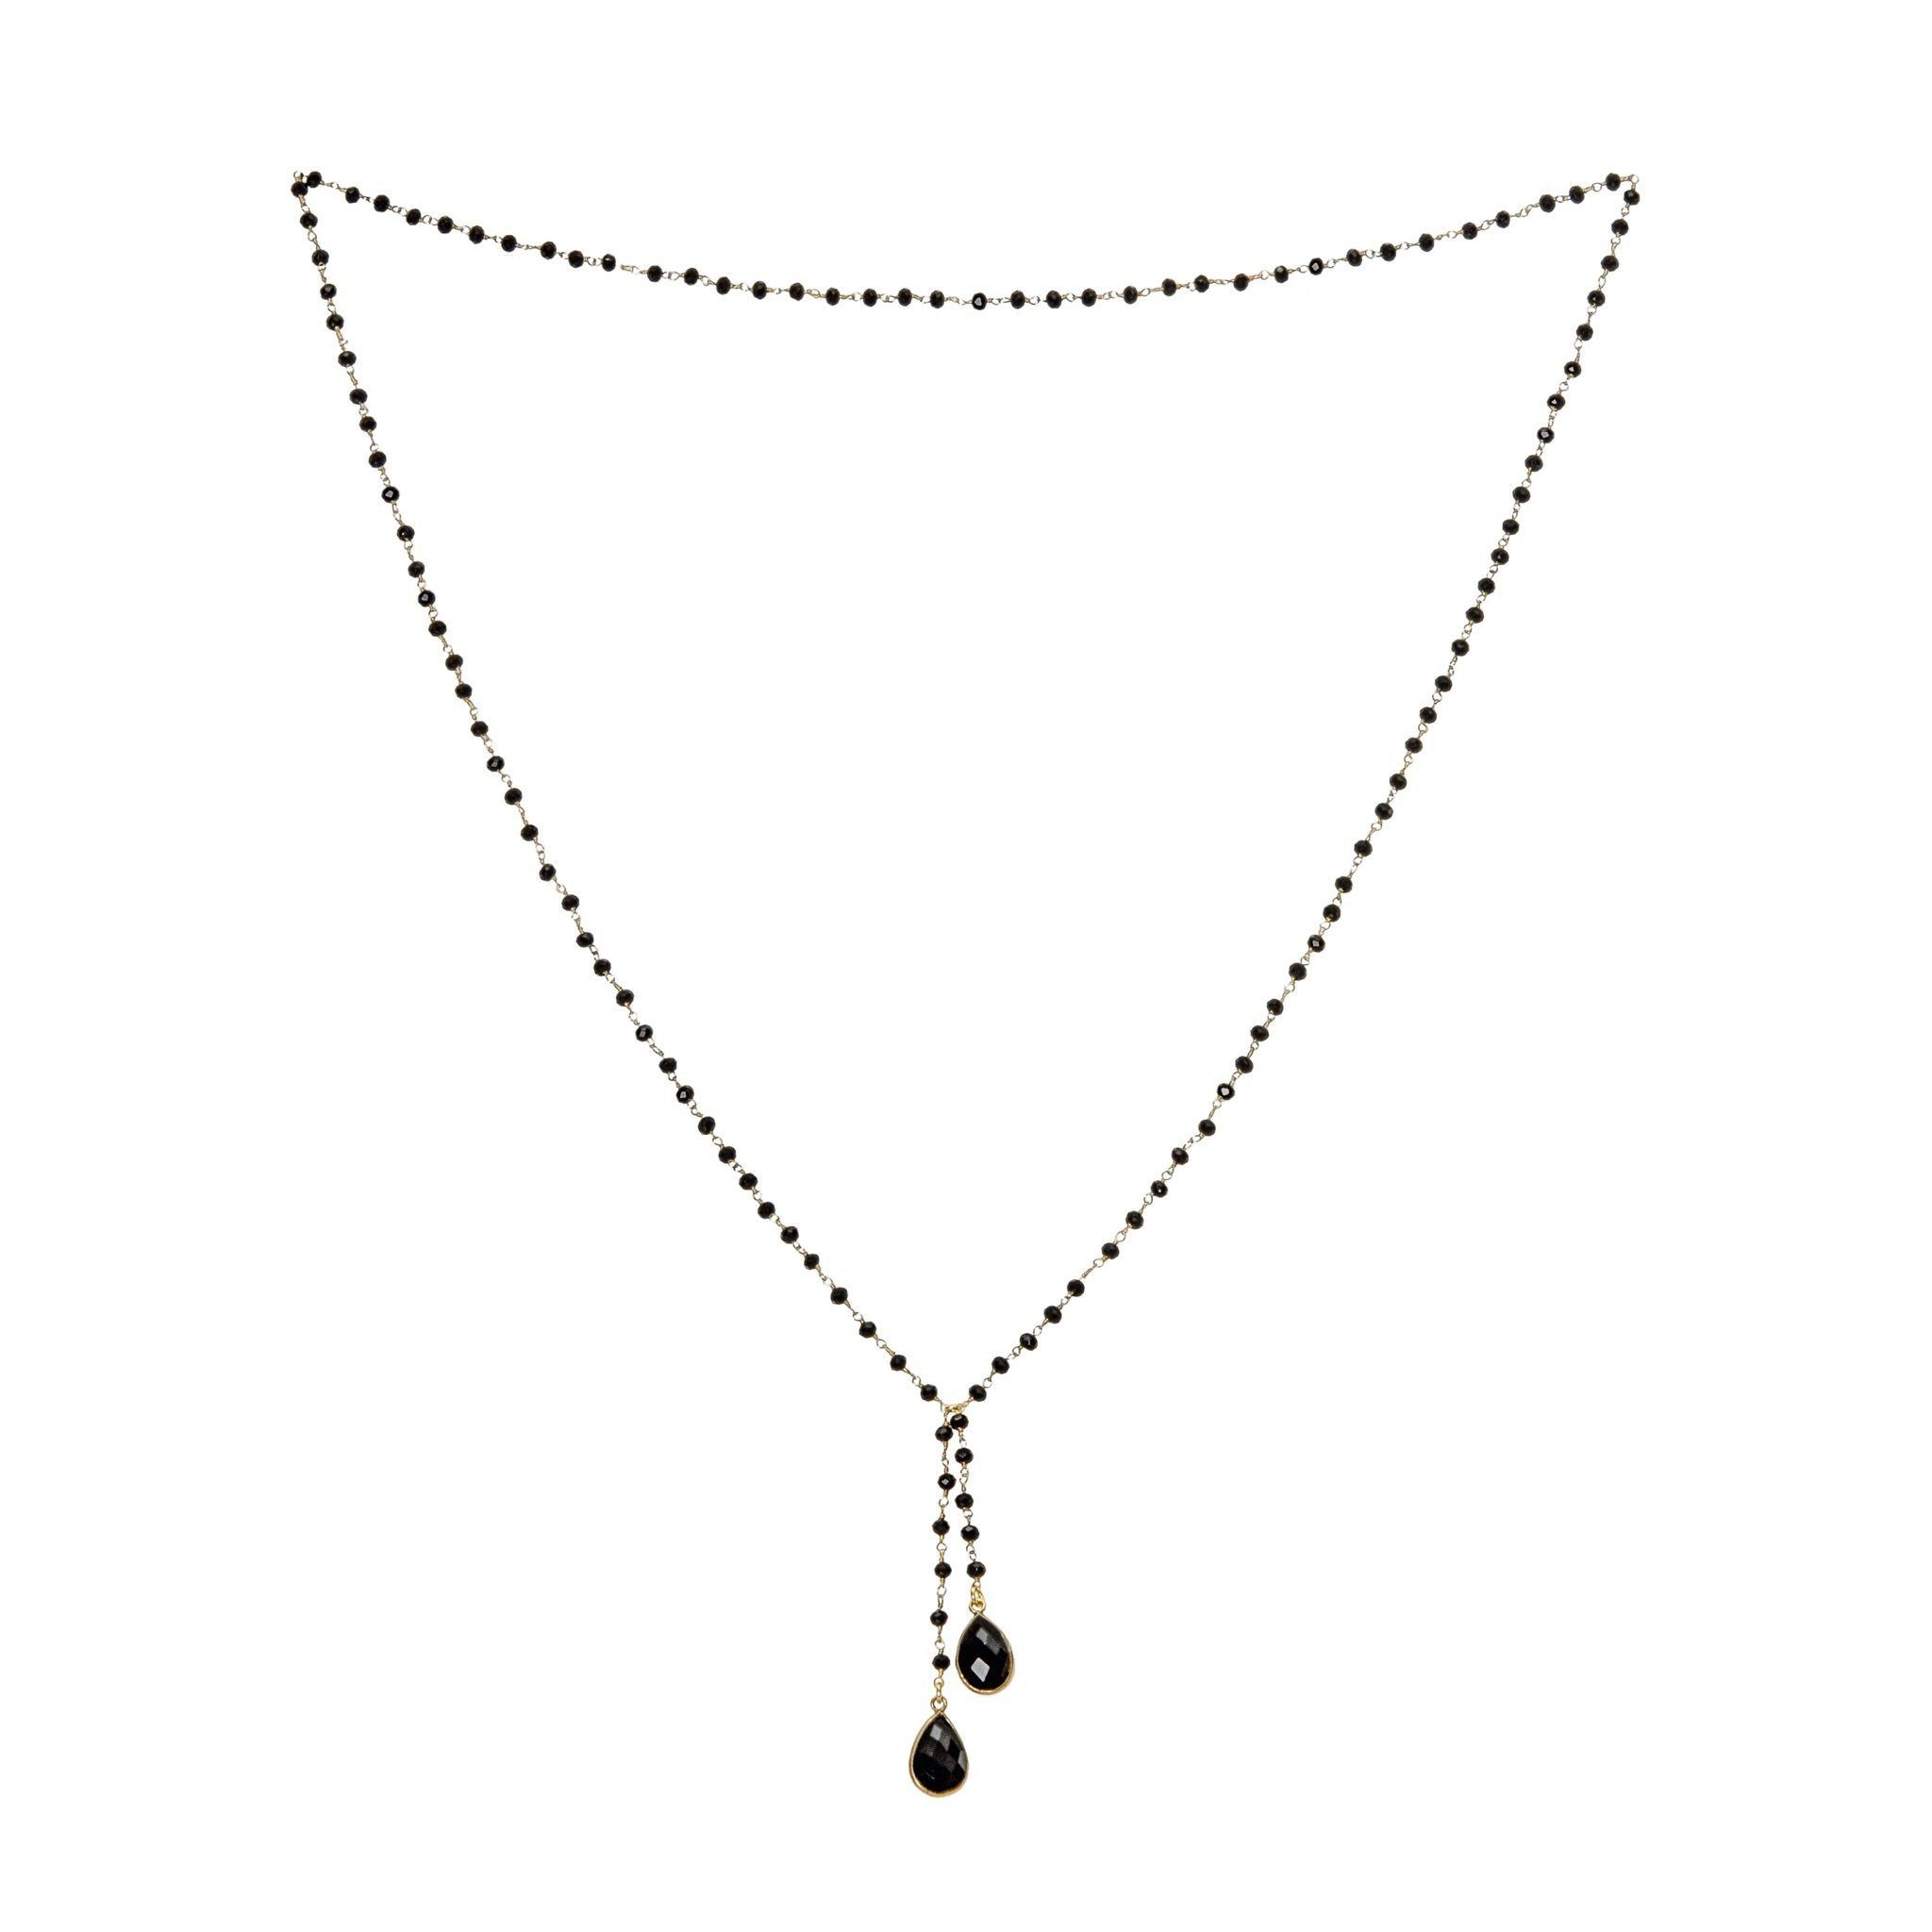 TOKA black onyx necklace with black onyx drops